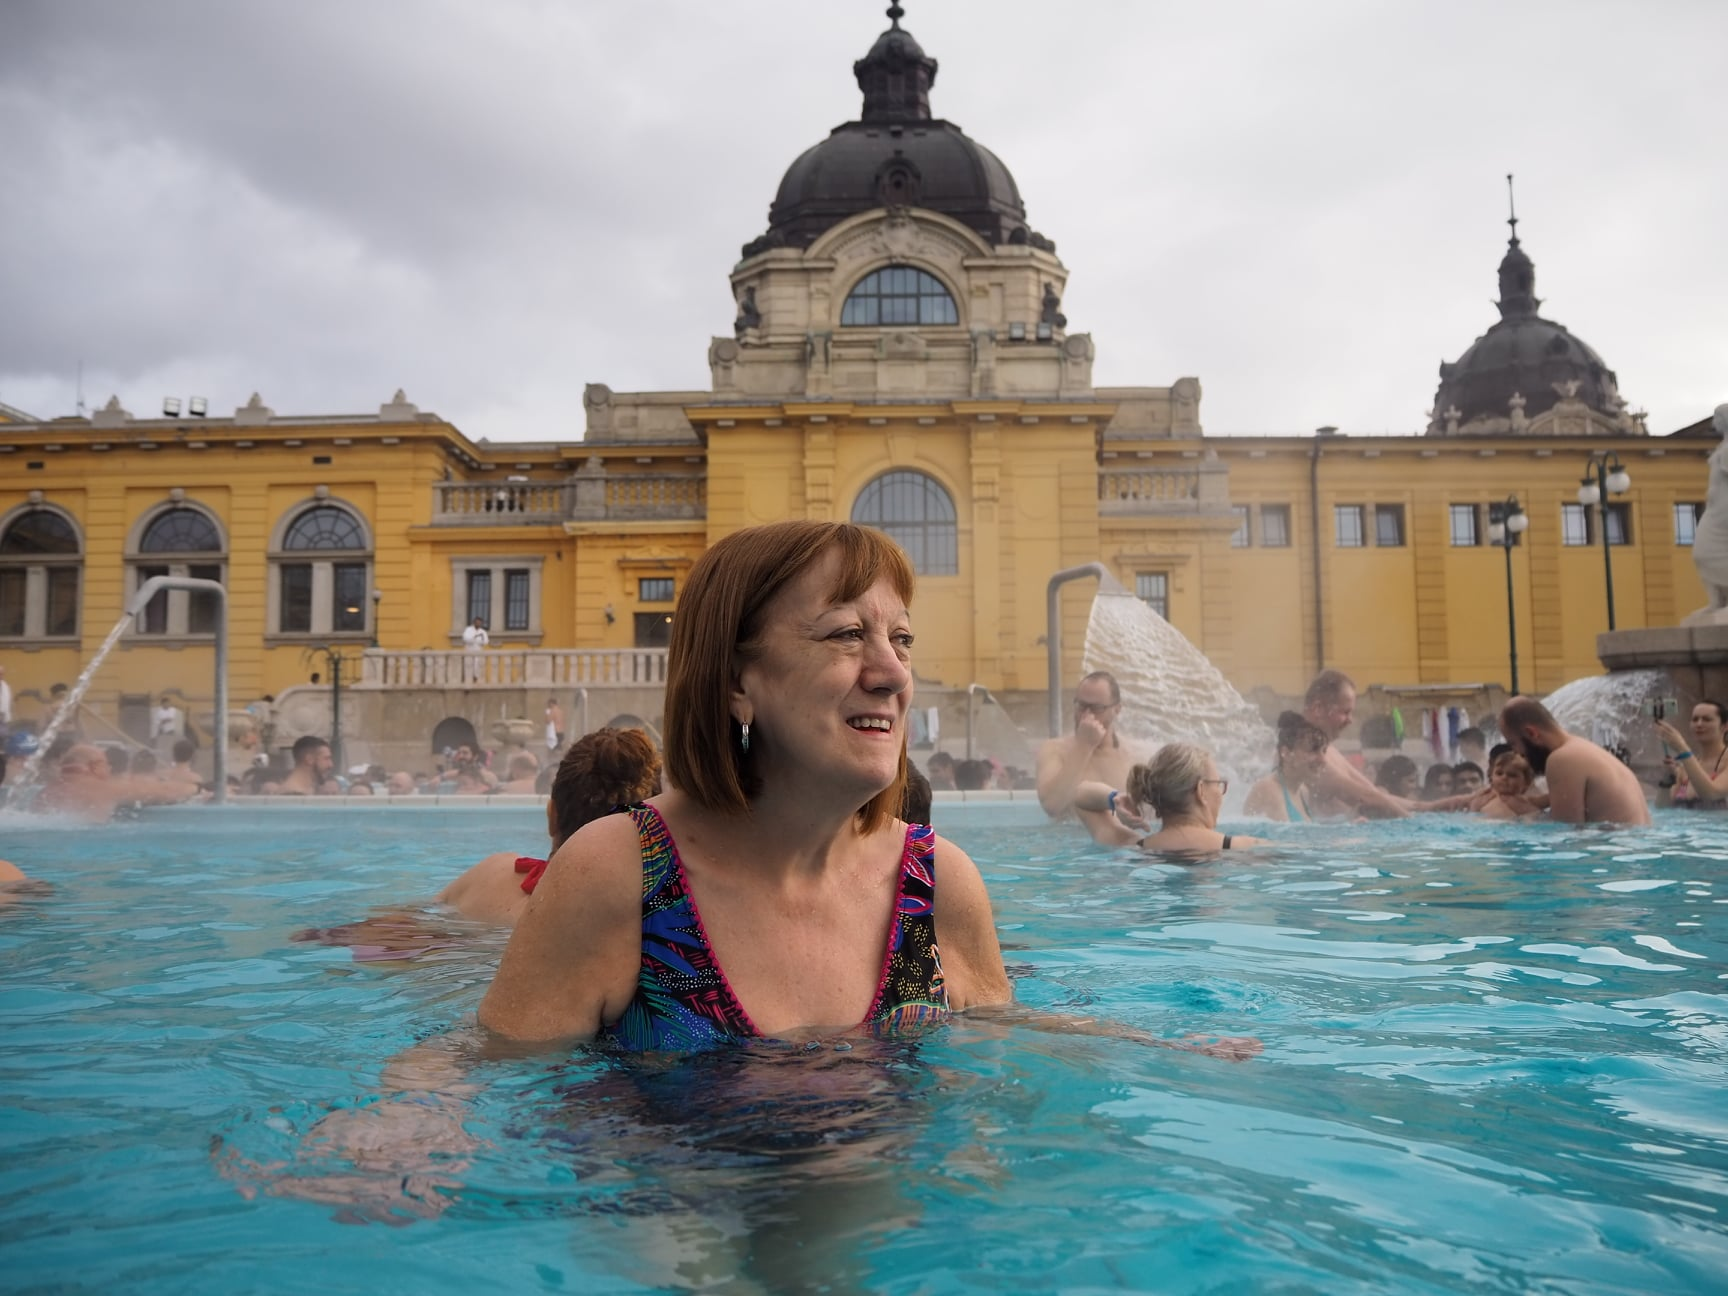 mum in the thermal baths looking into the distance, with the building behind her